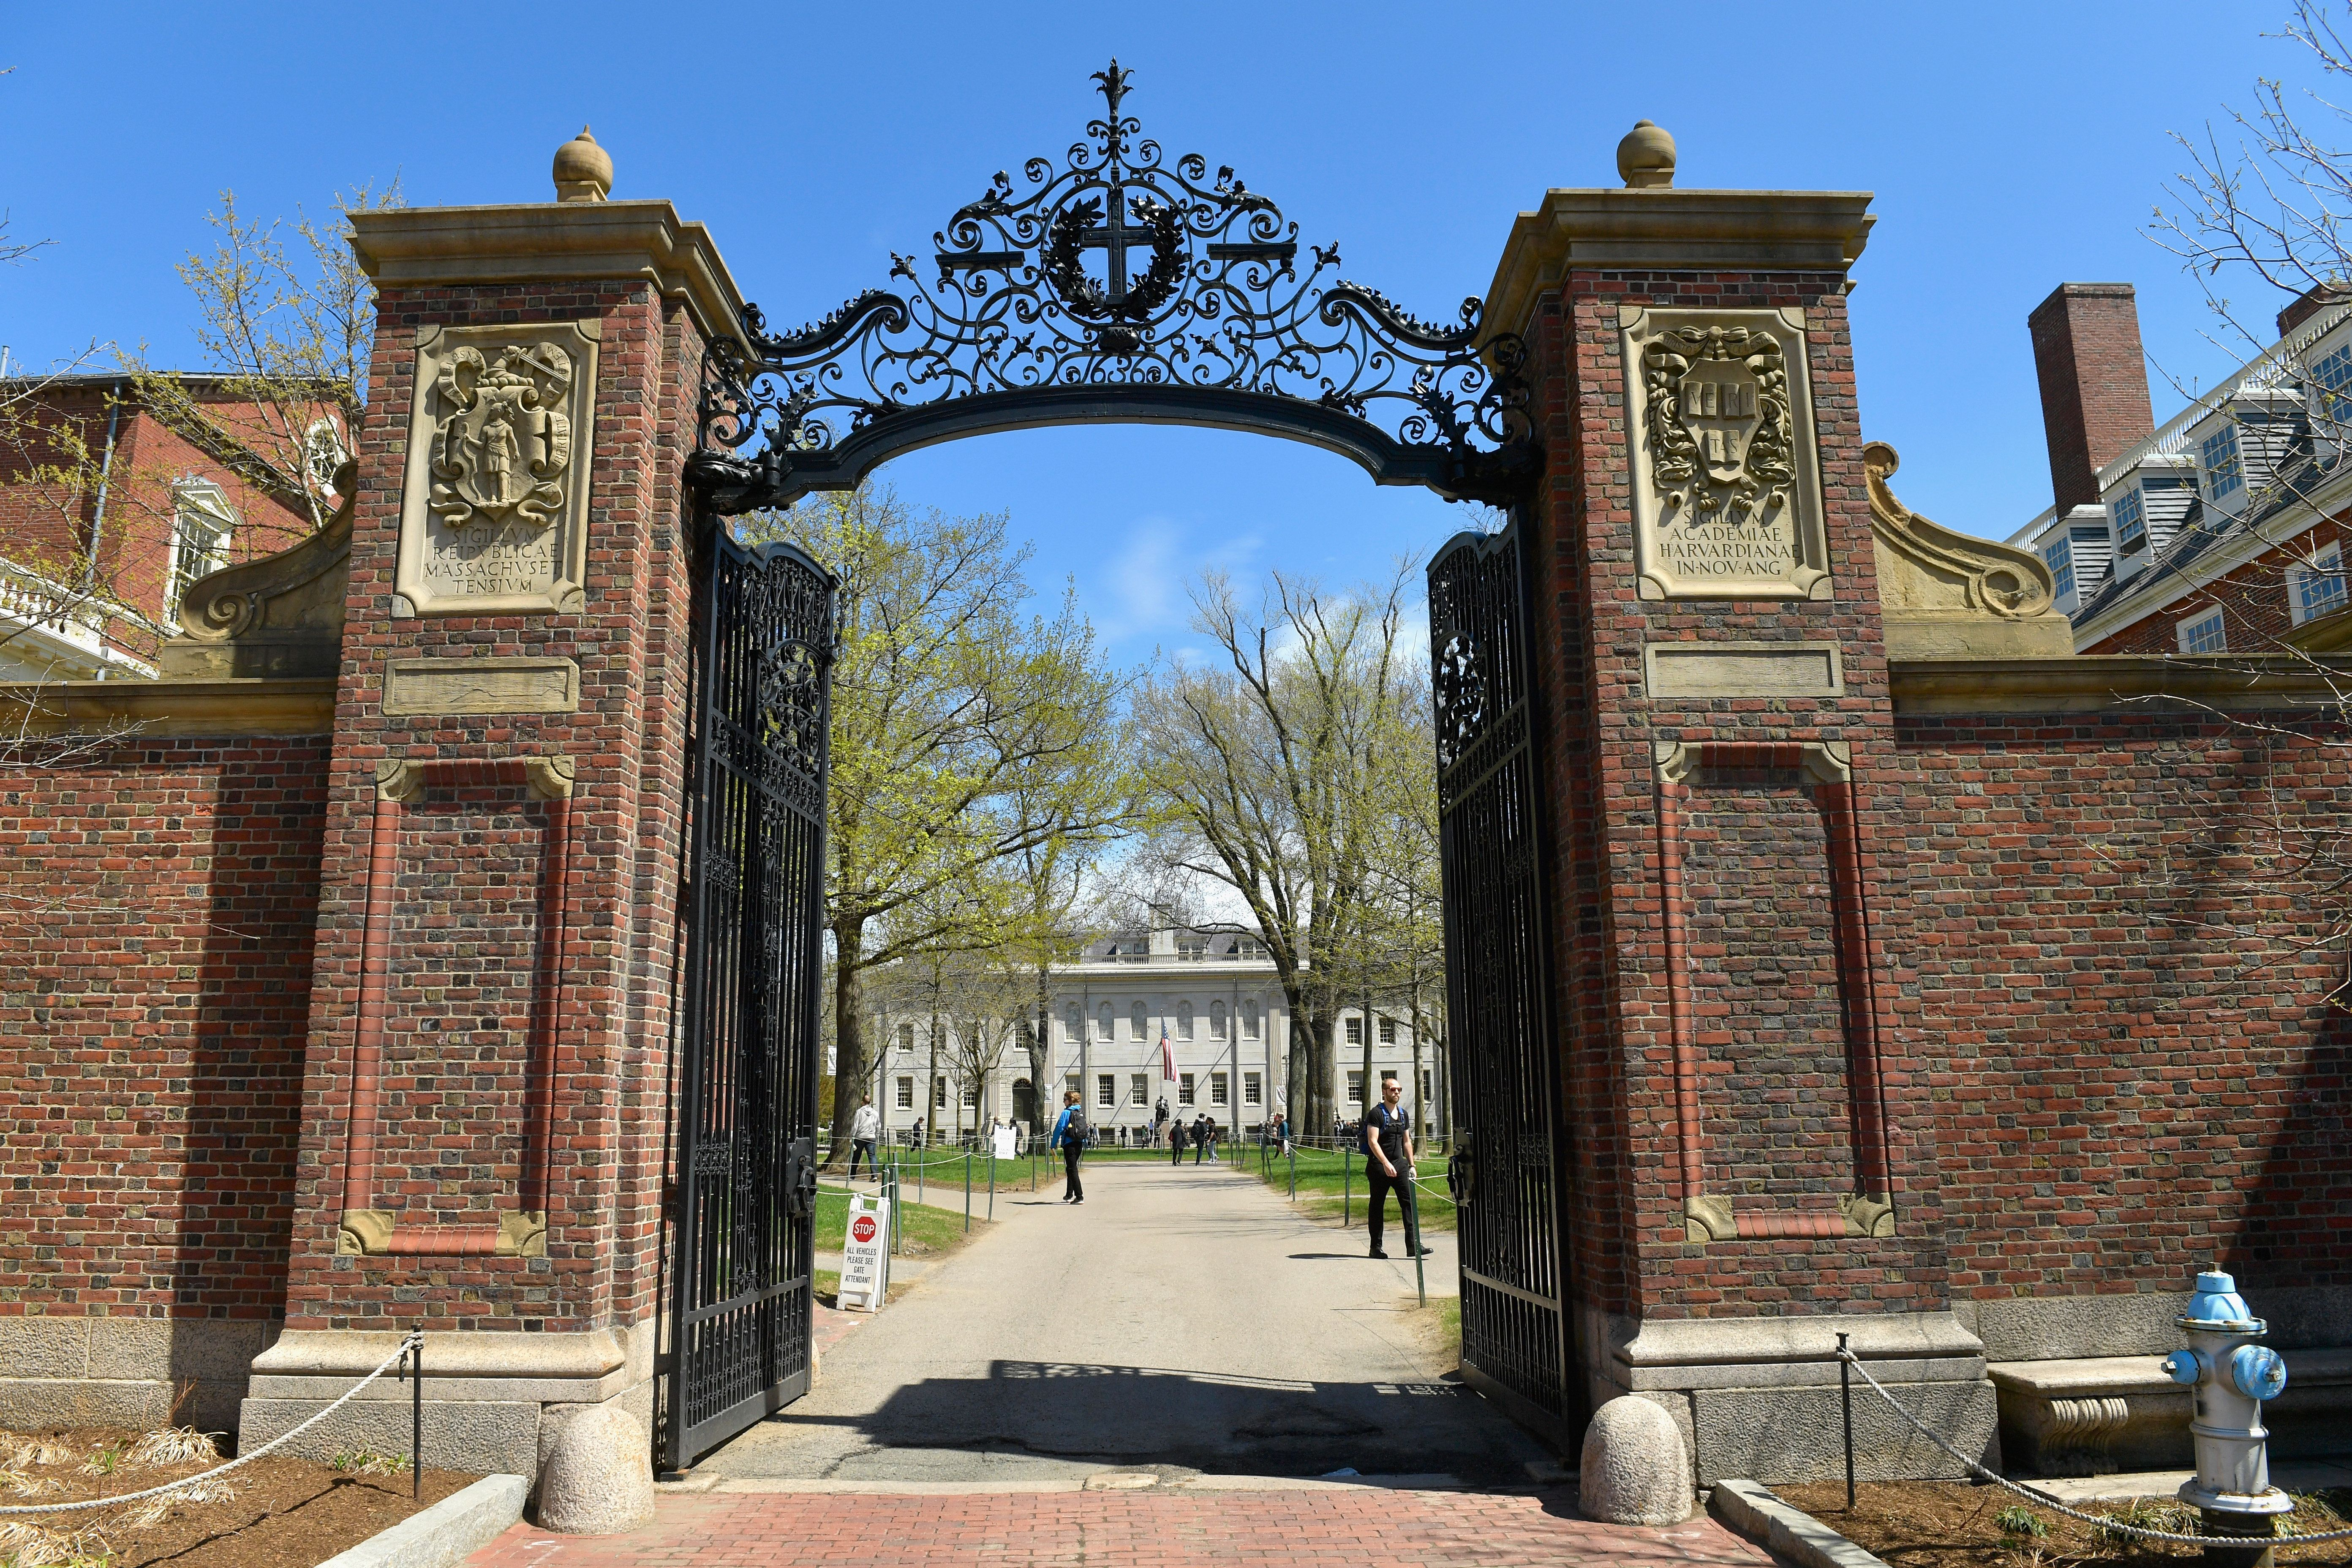 Fortypeople atHarvard Universityhave been sickened with the mumps virus.